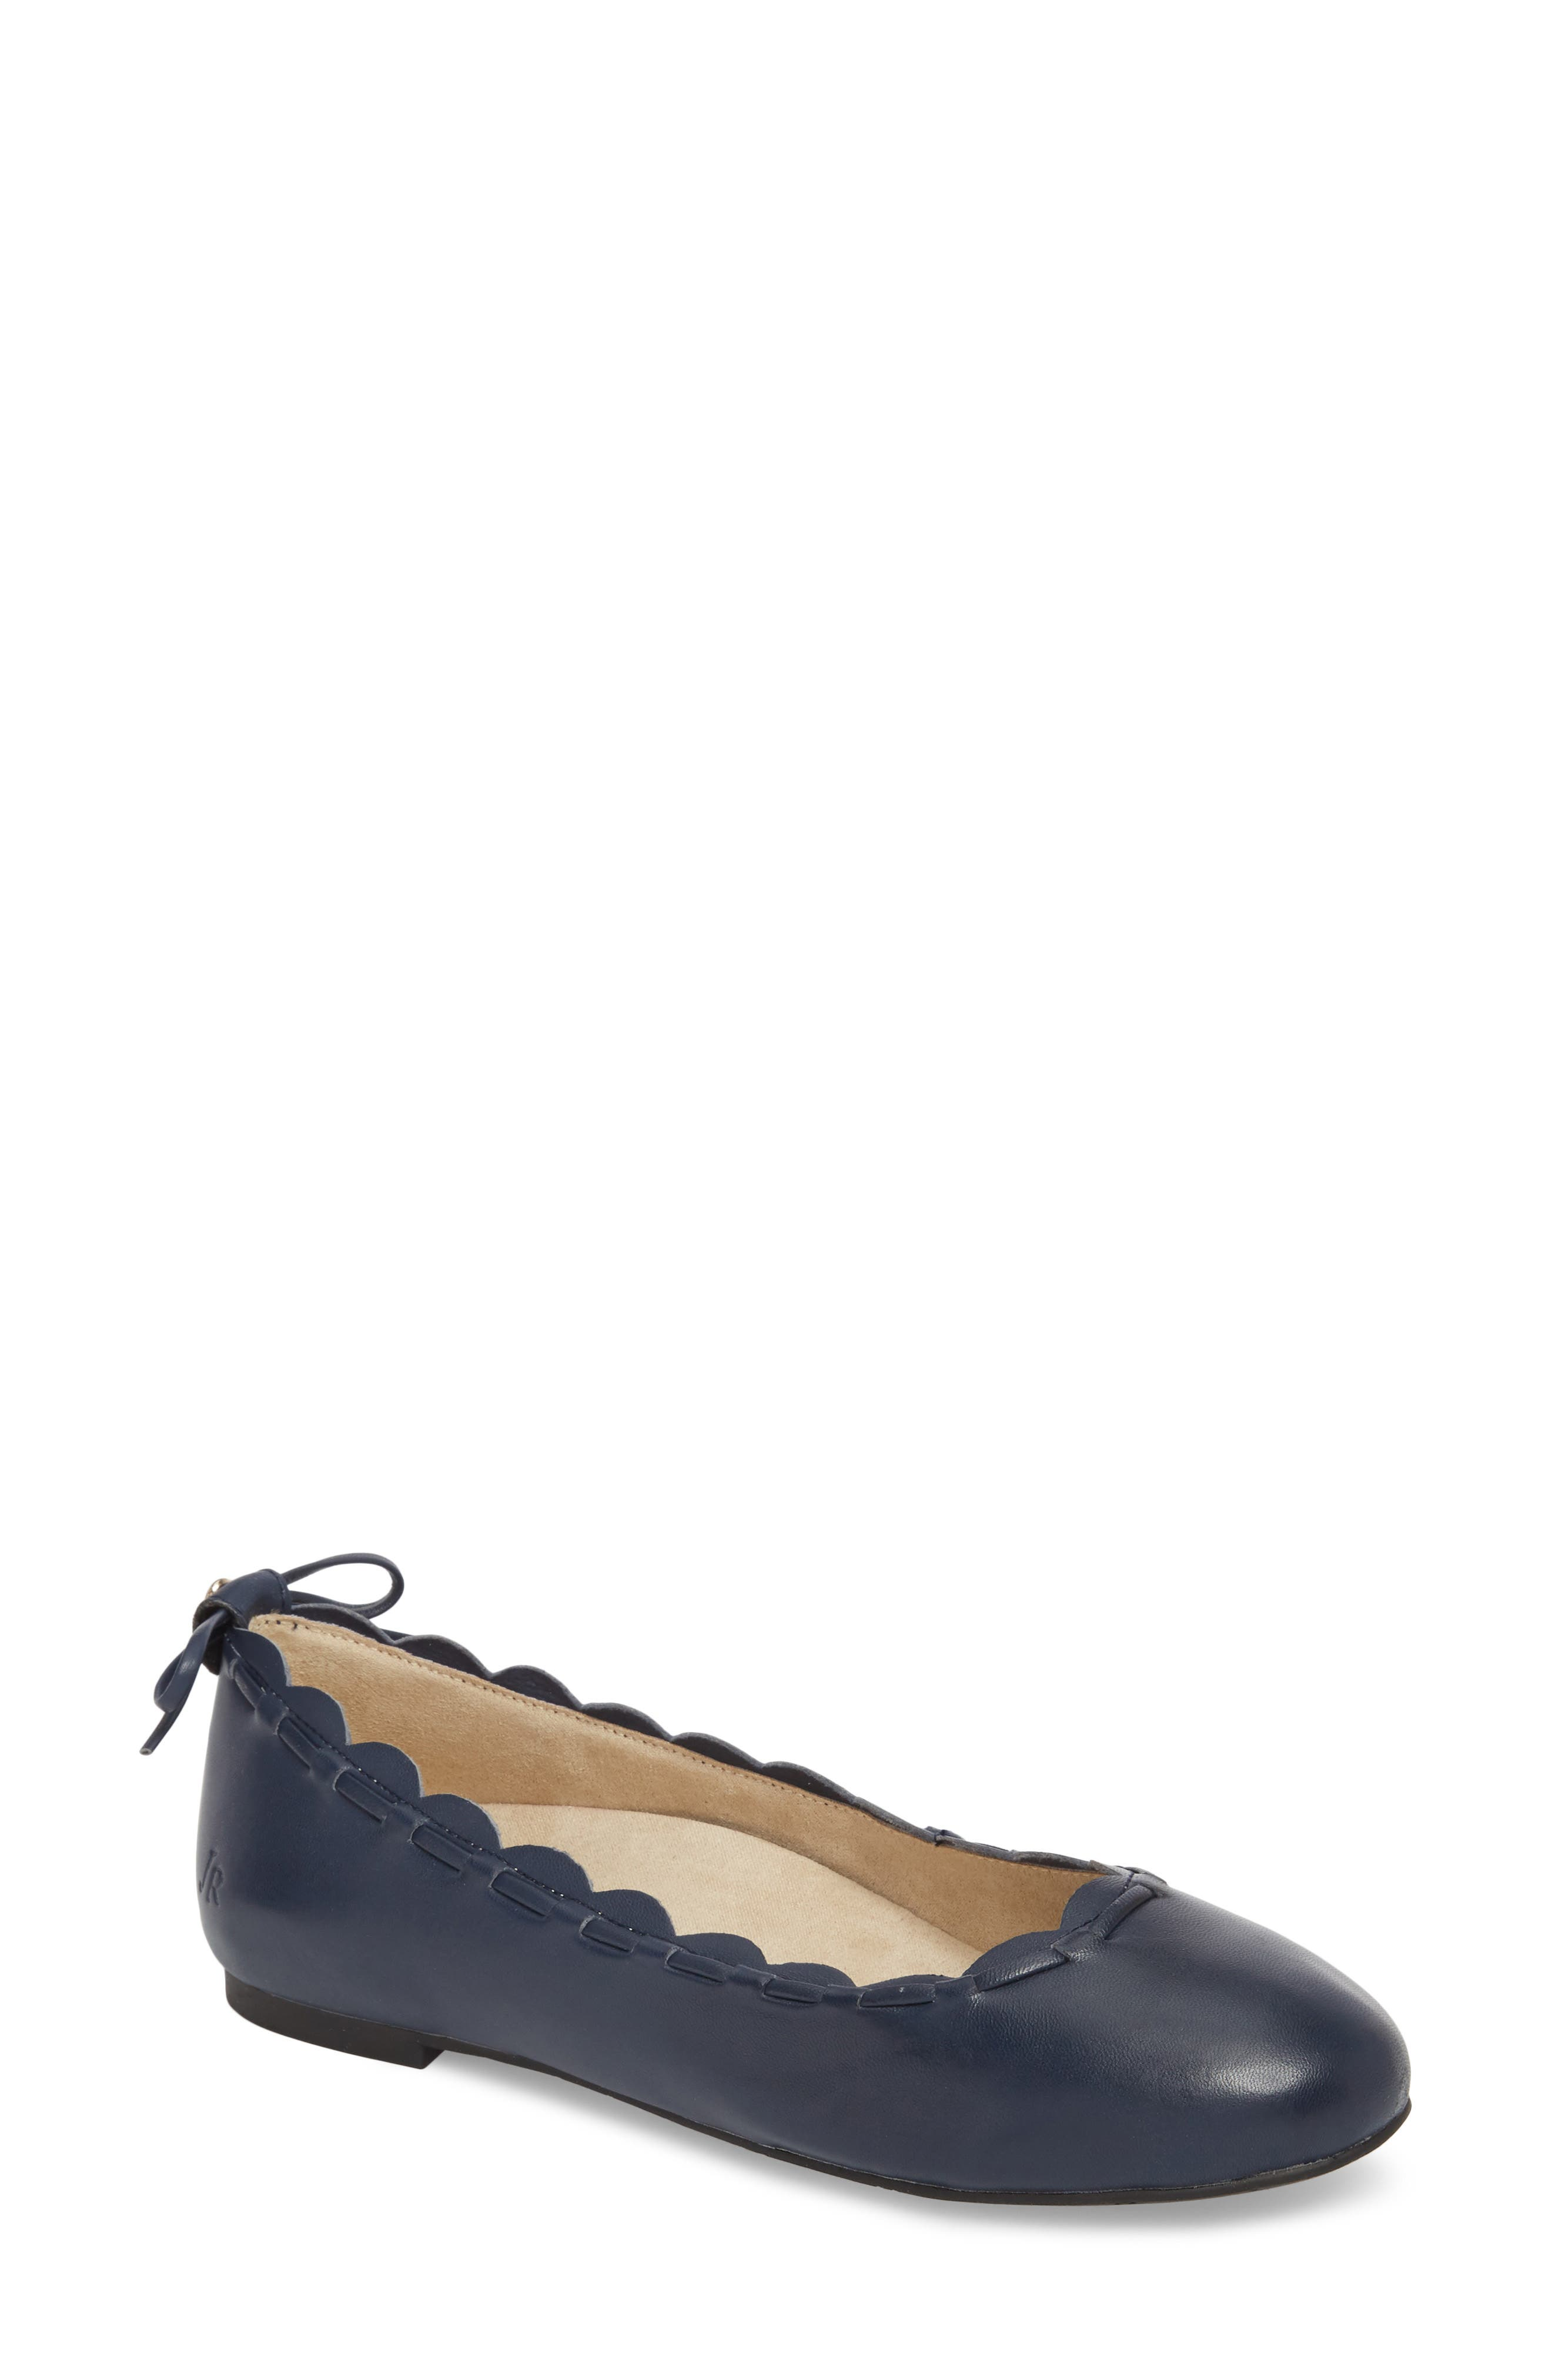 Lucie II Scalloped Flat,                             Main thumbnail 1, color,                             Midnight Blue Leather